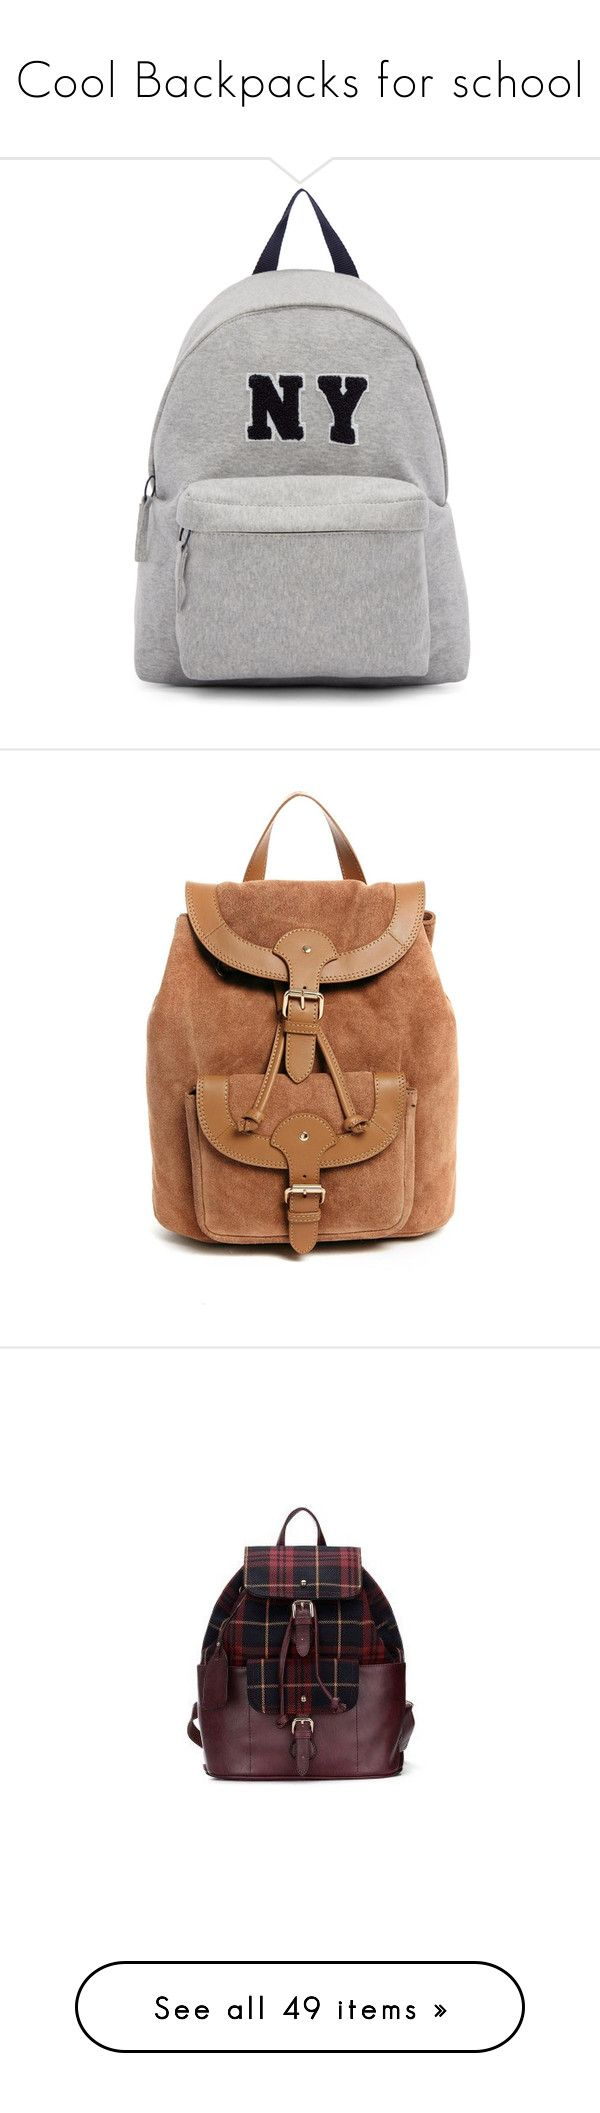 """""""Cool Backpacks for school"""" by fkbianka ❤ liked on Polyvore featuring bags, backpacks, backpack, bolsas, mochila, accessories, handle bag, grey backpack, rucksack bag and day pack backpack"""